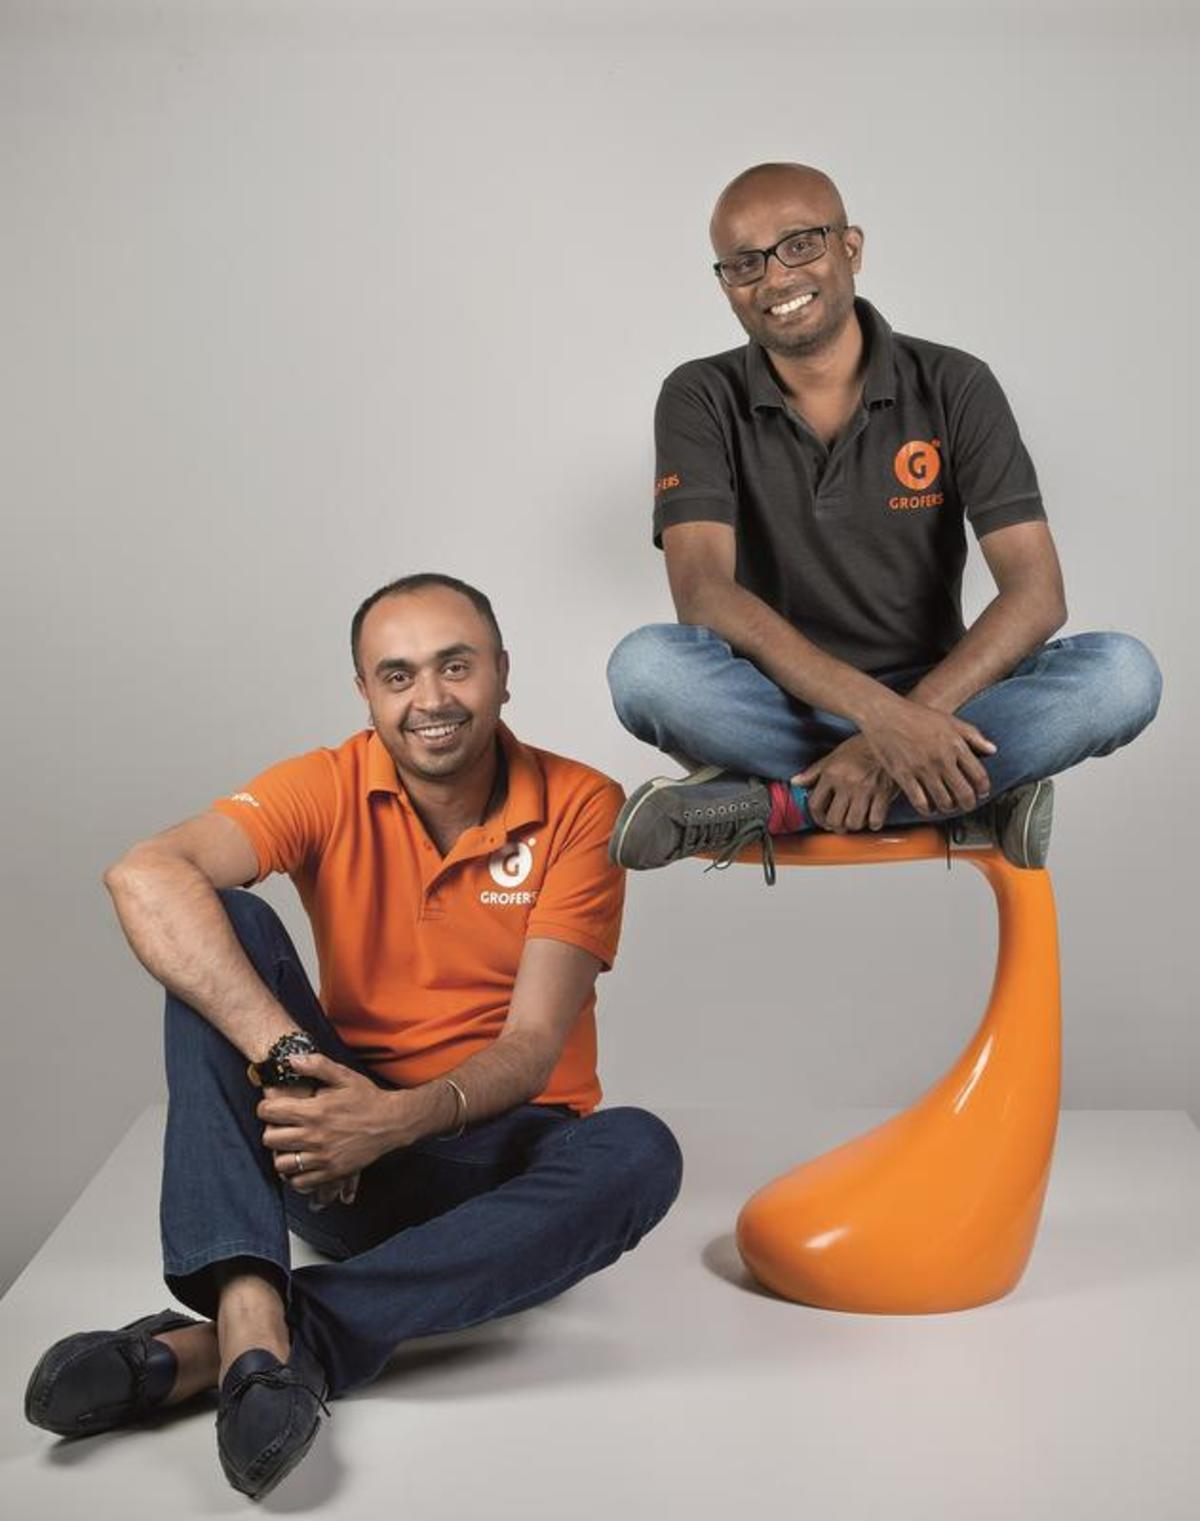 Founders of Grofers